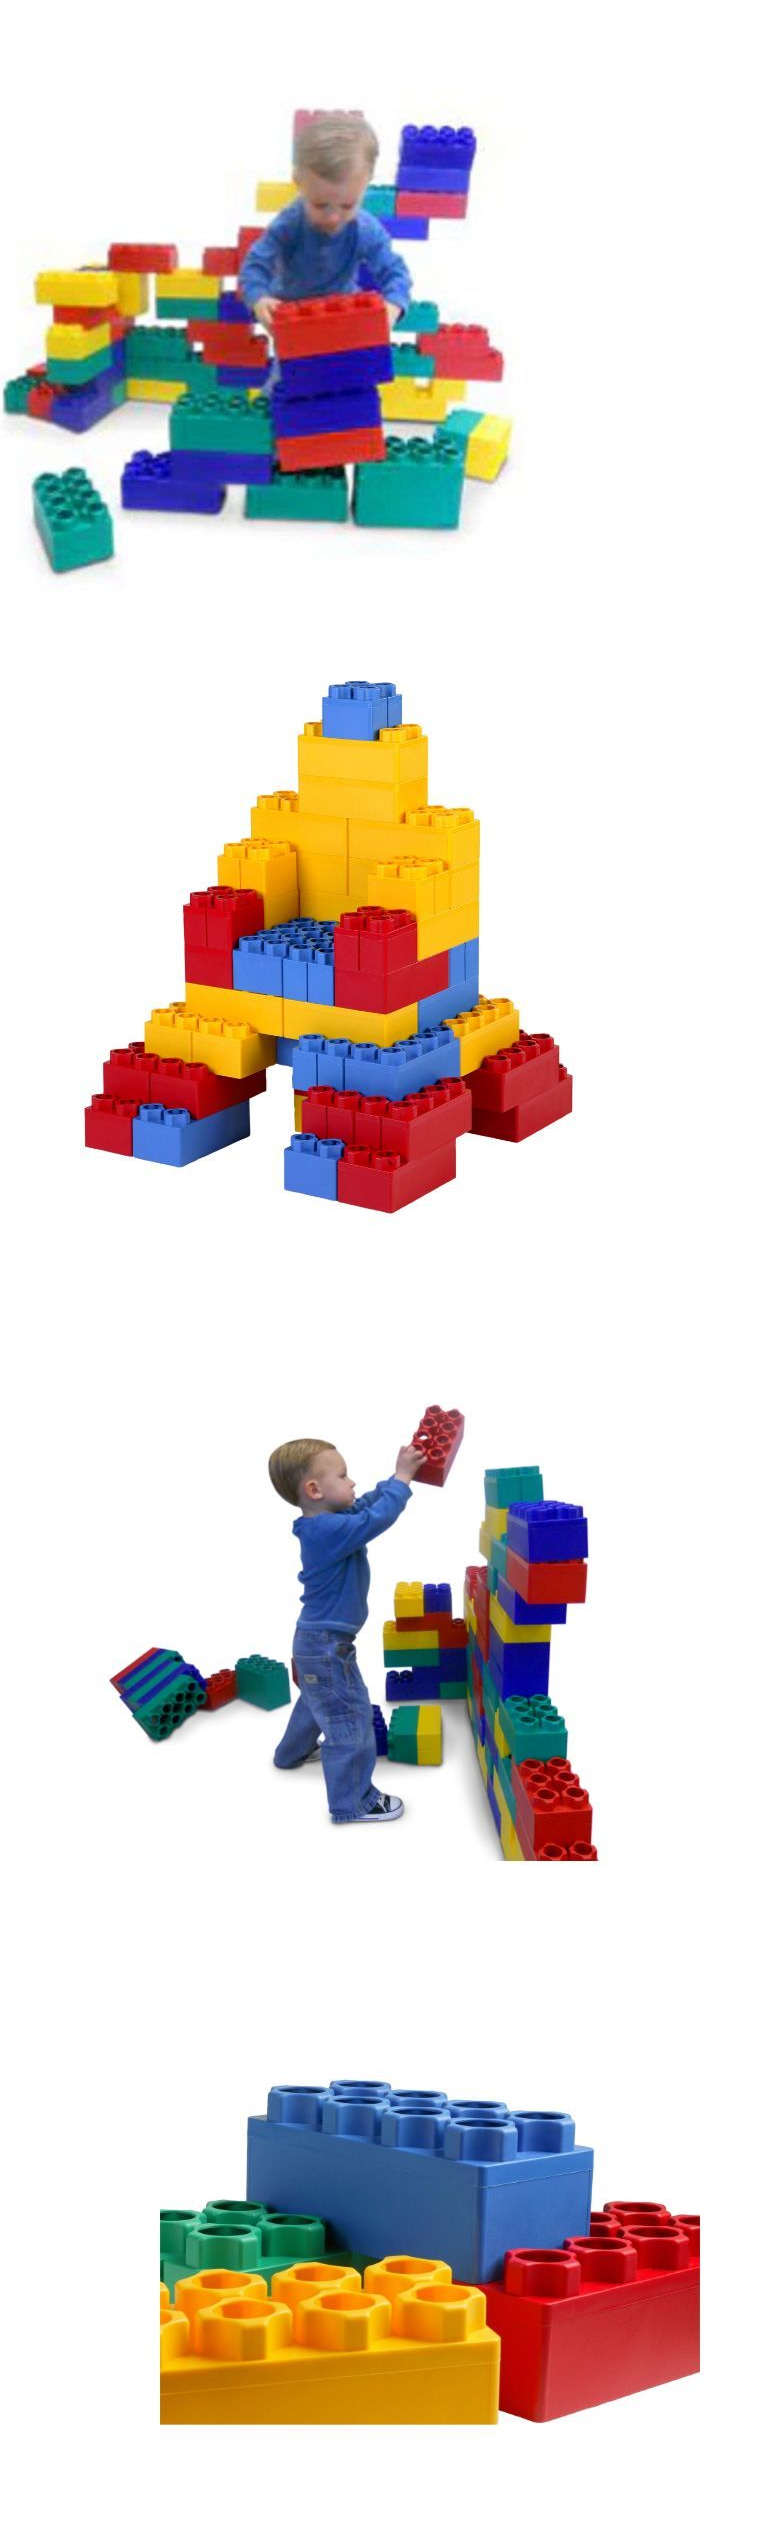 Blocks Building Blocks For Toddlers Boys Girls Preschool